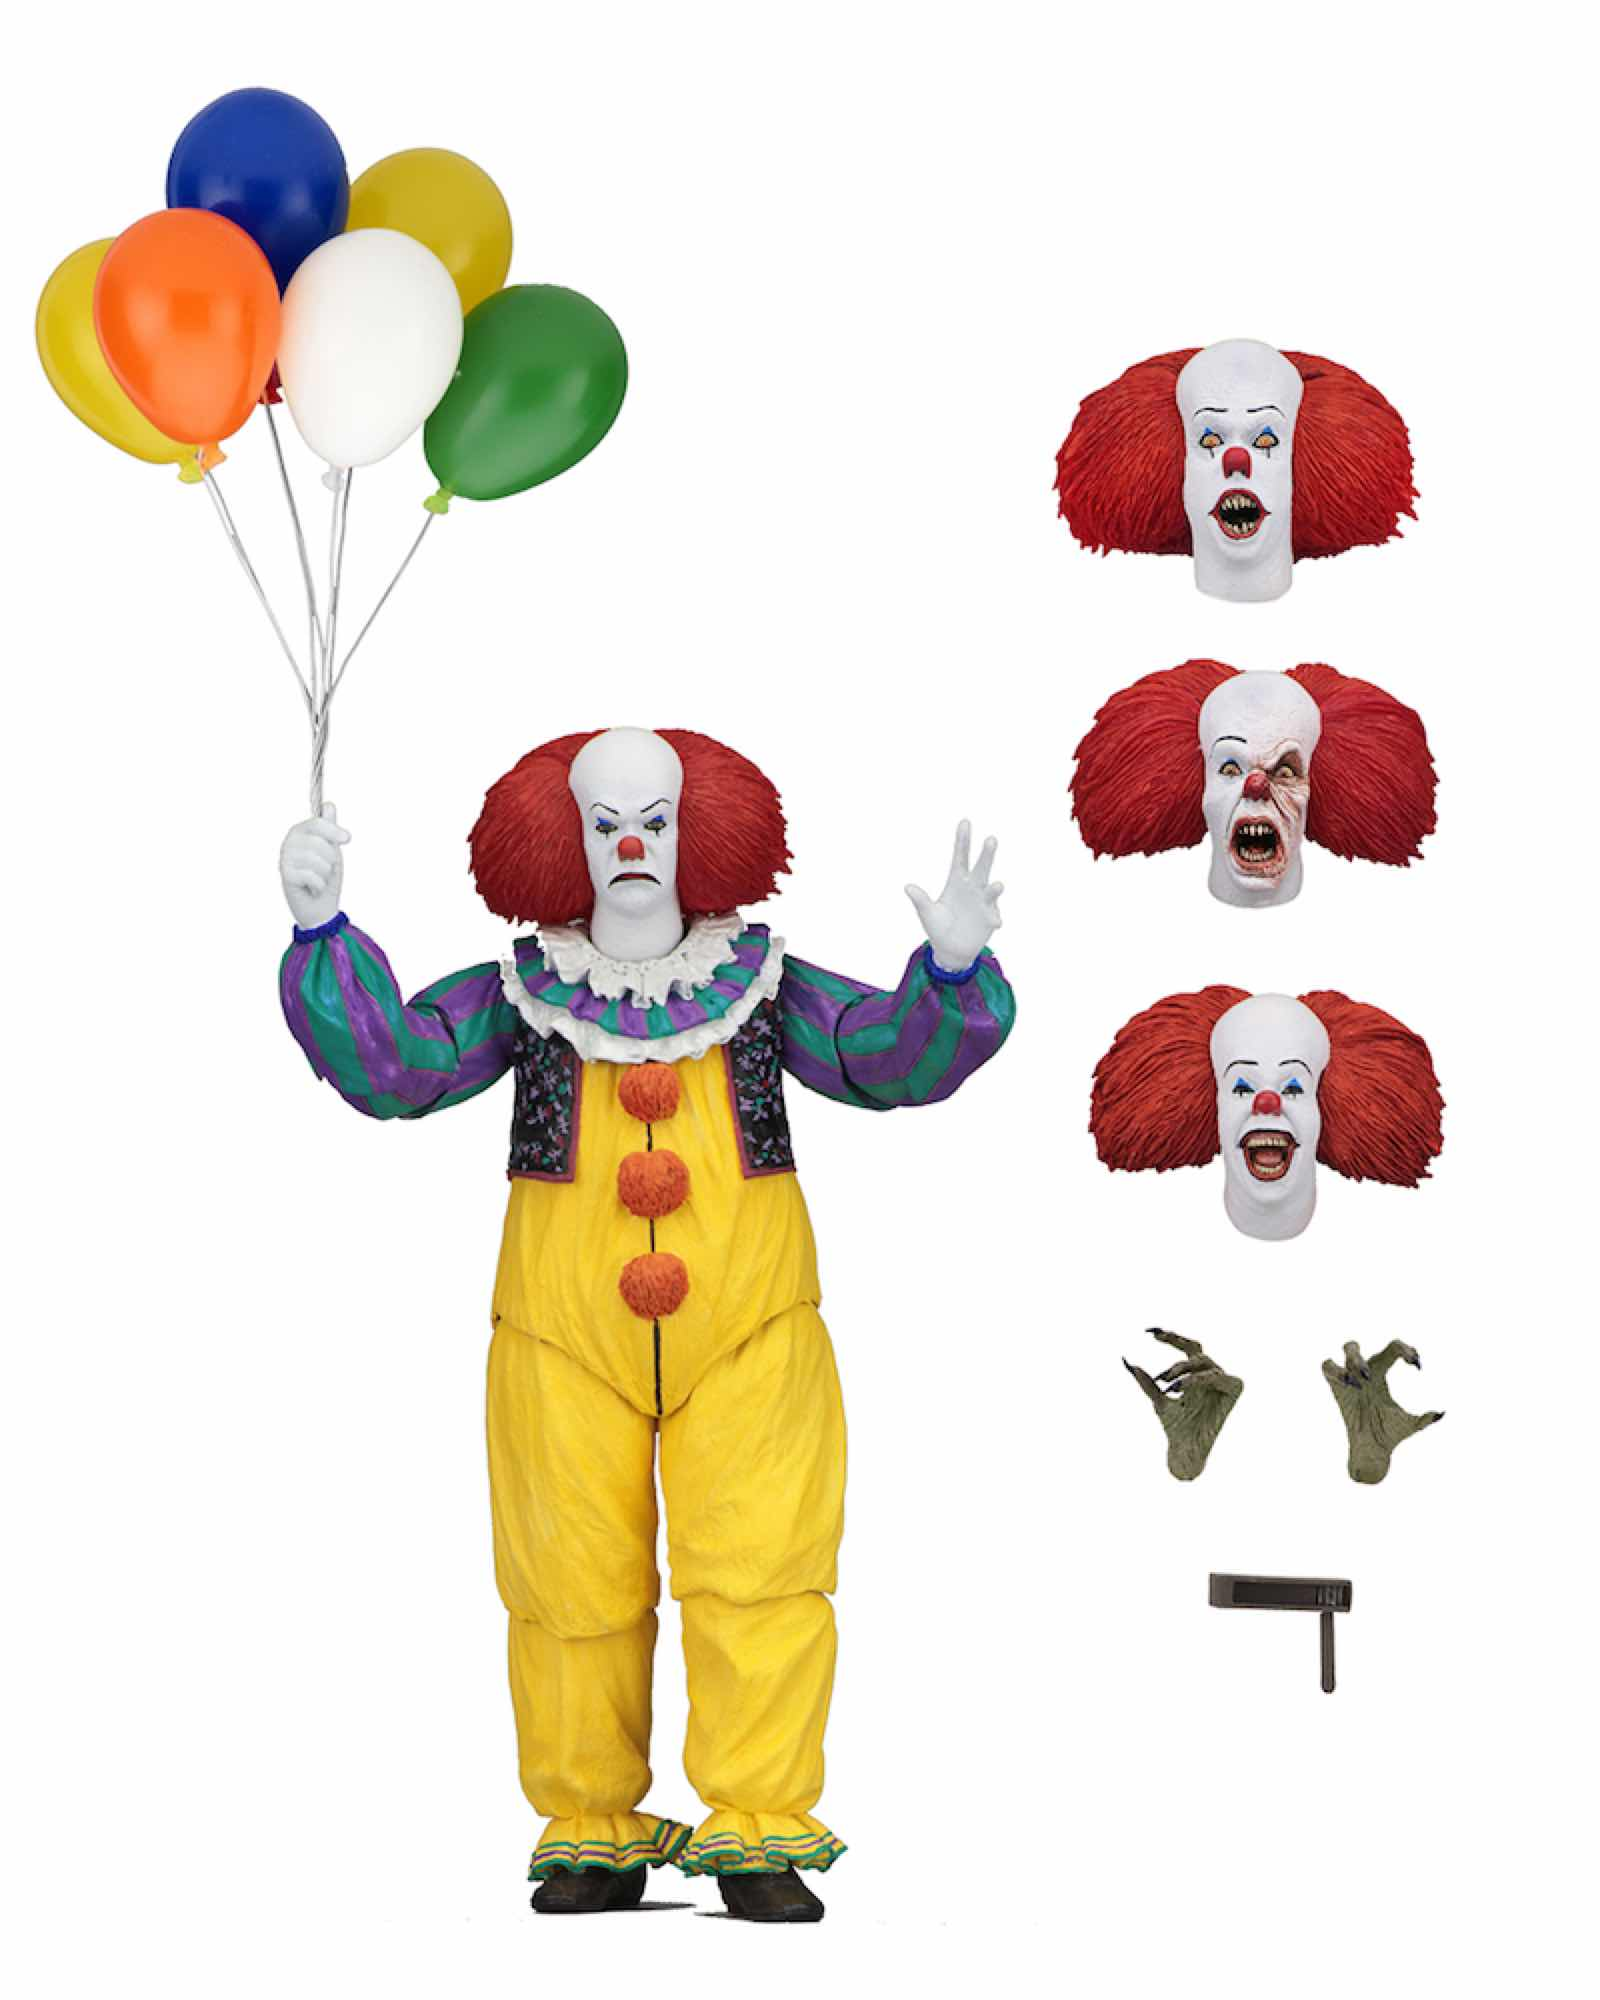 ULTIMATE PENNYWISE FIGURA 18 CM SCALE ACTION FIGURE IT 1990 MINISERIES